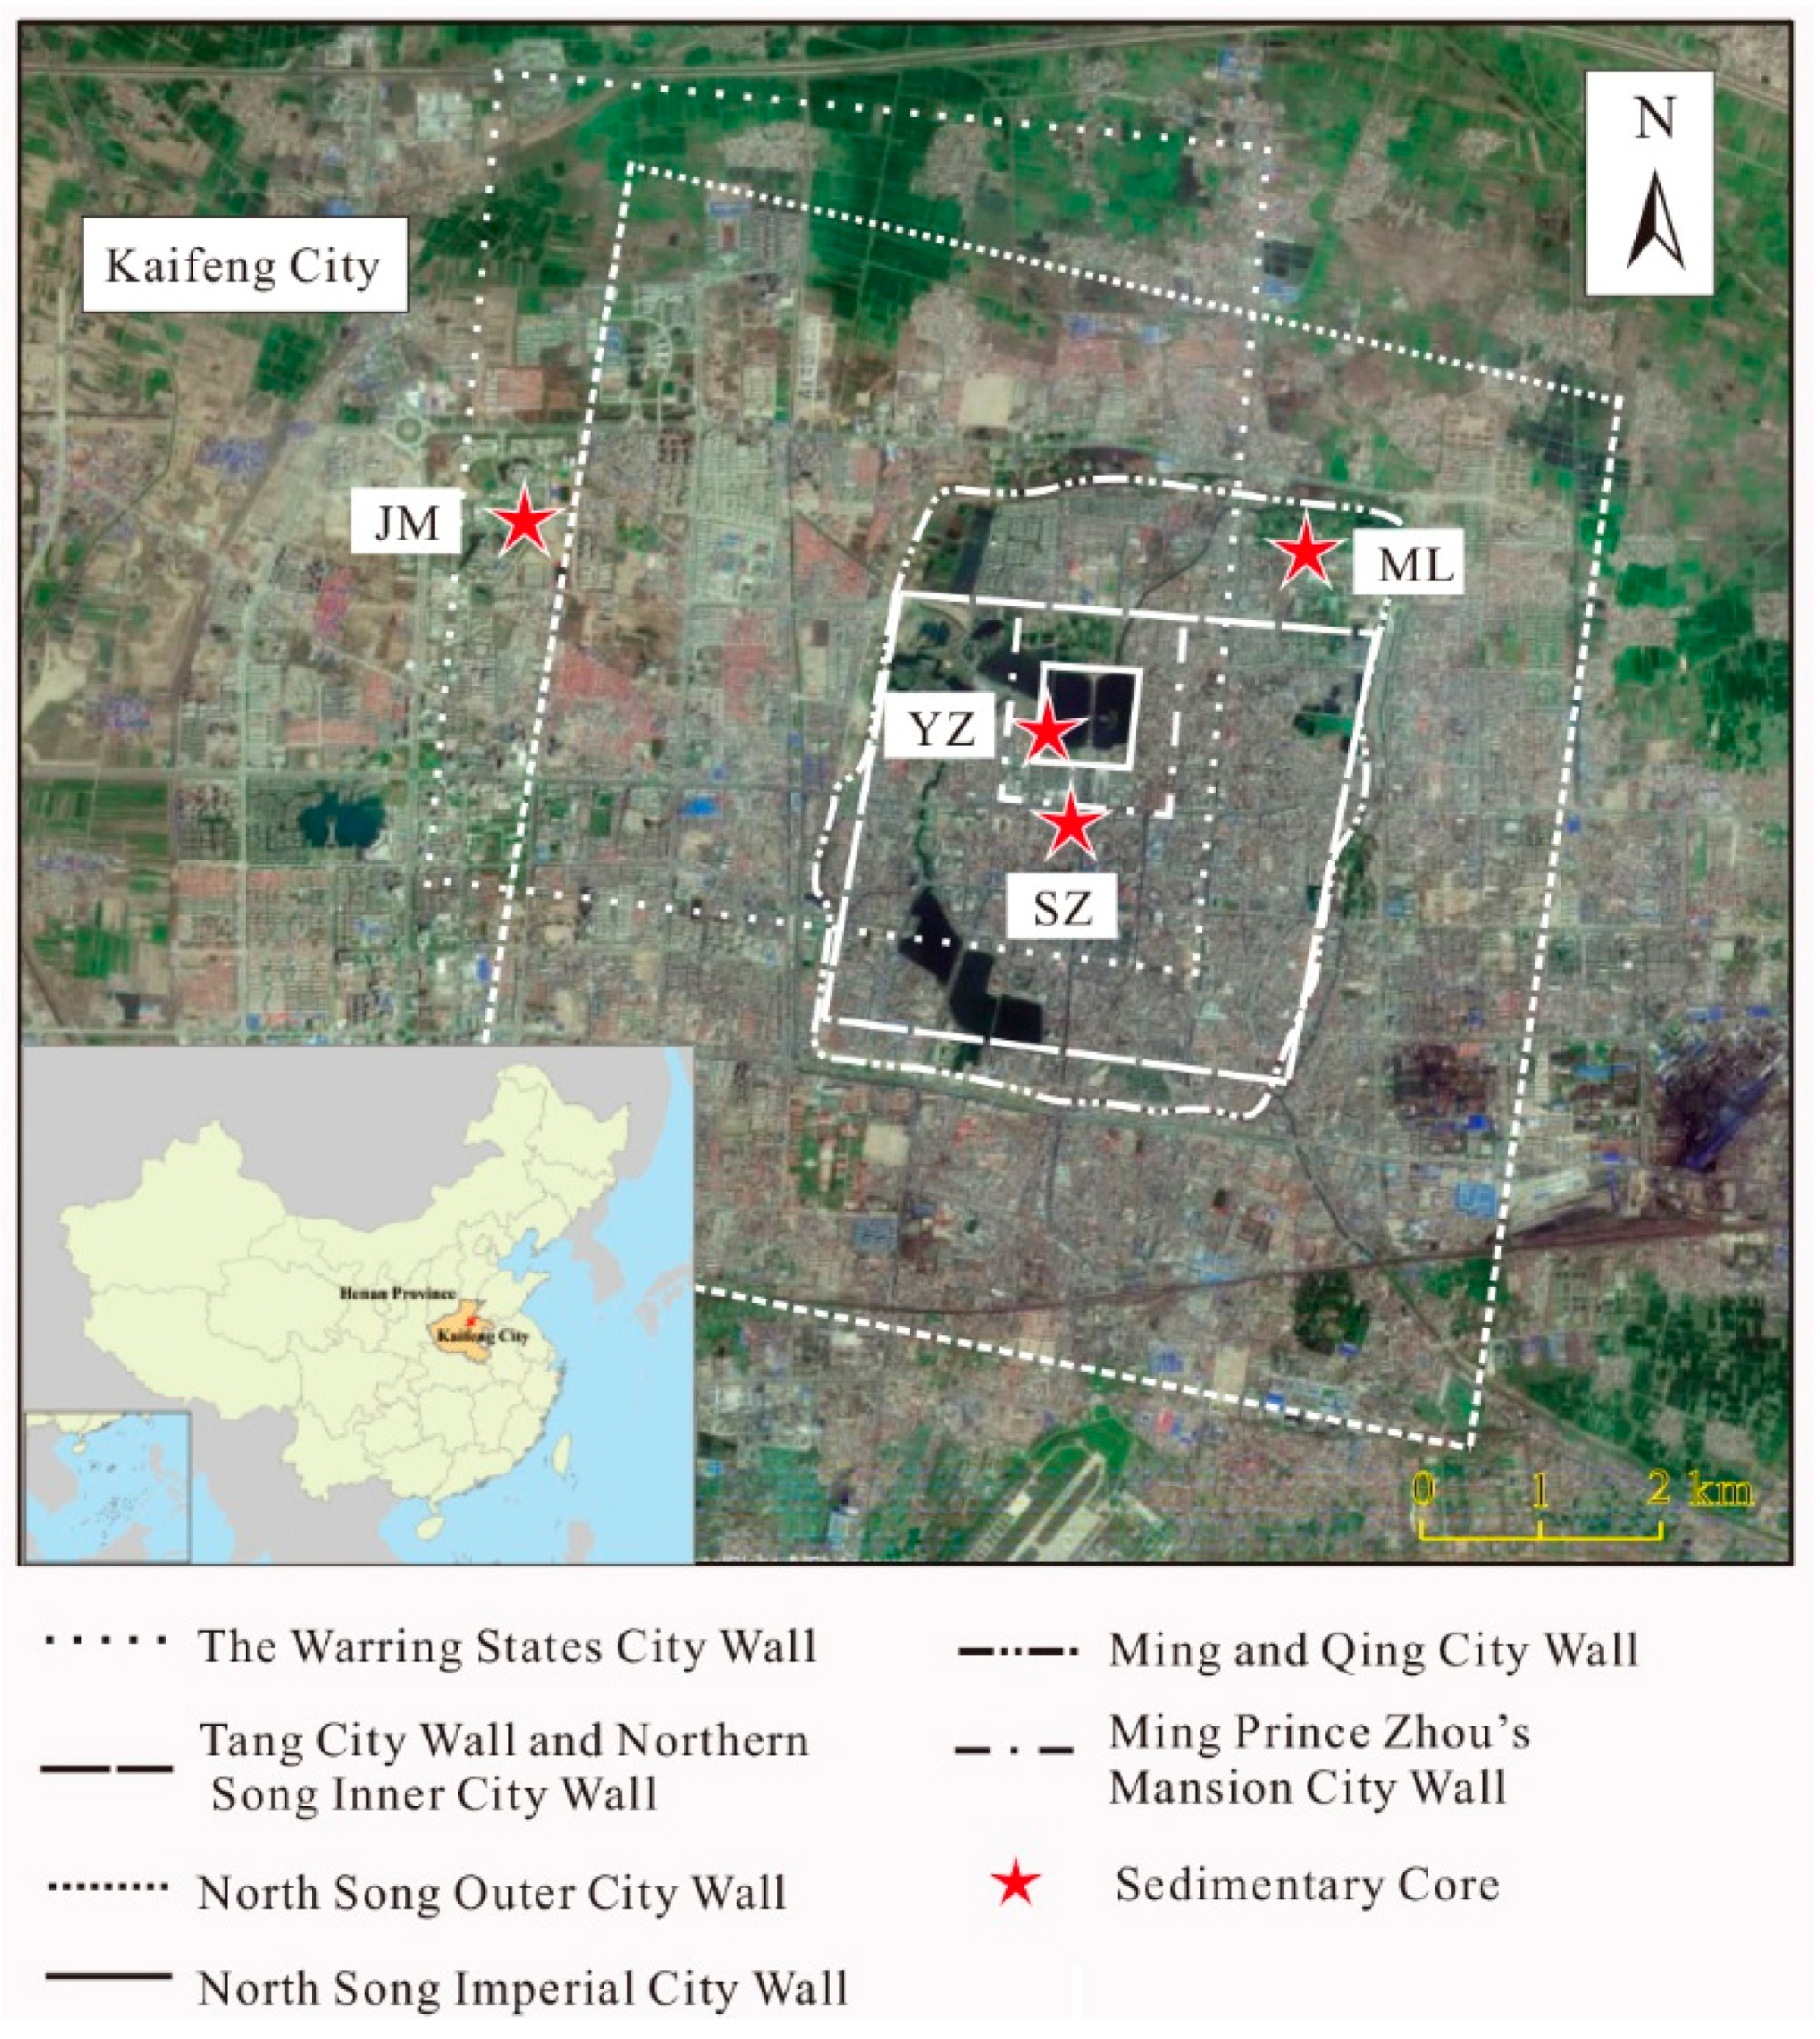 Sustainability   Free Full-Text   A Geoarchaeological Reading of the on wuxi china map world, wuhan china map world, xinxiang china map world, suzhou china map world, chengdu china map world, kunming china map world, hangzhou china map world, hefei china map world,